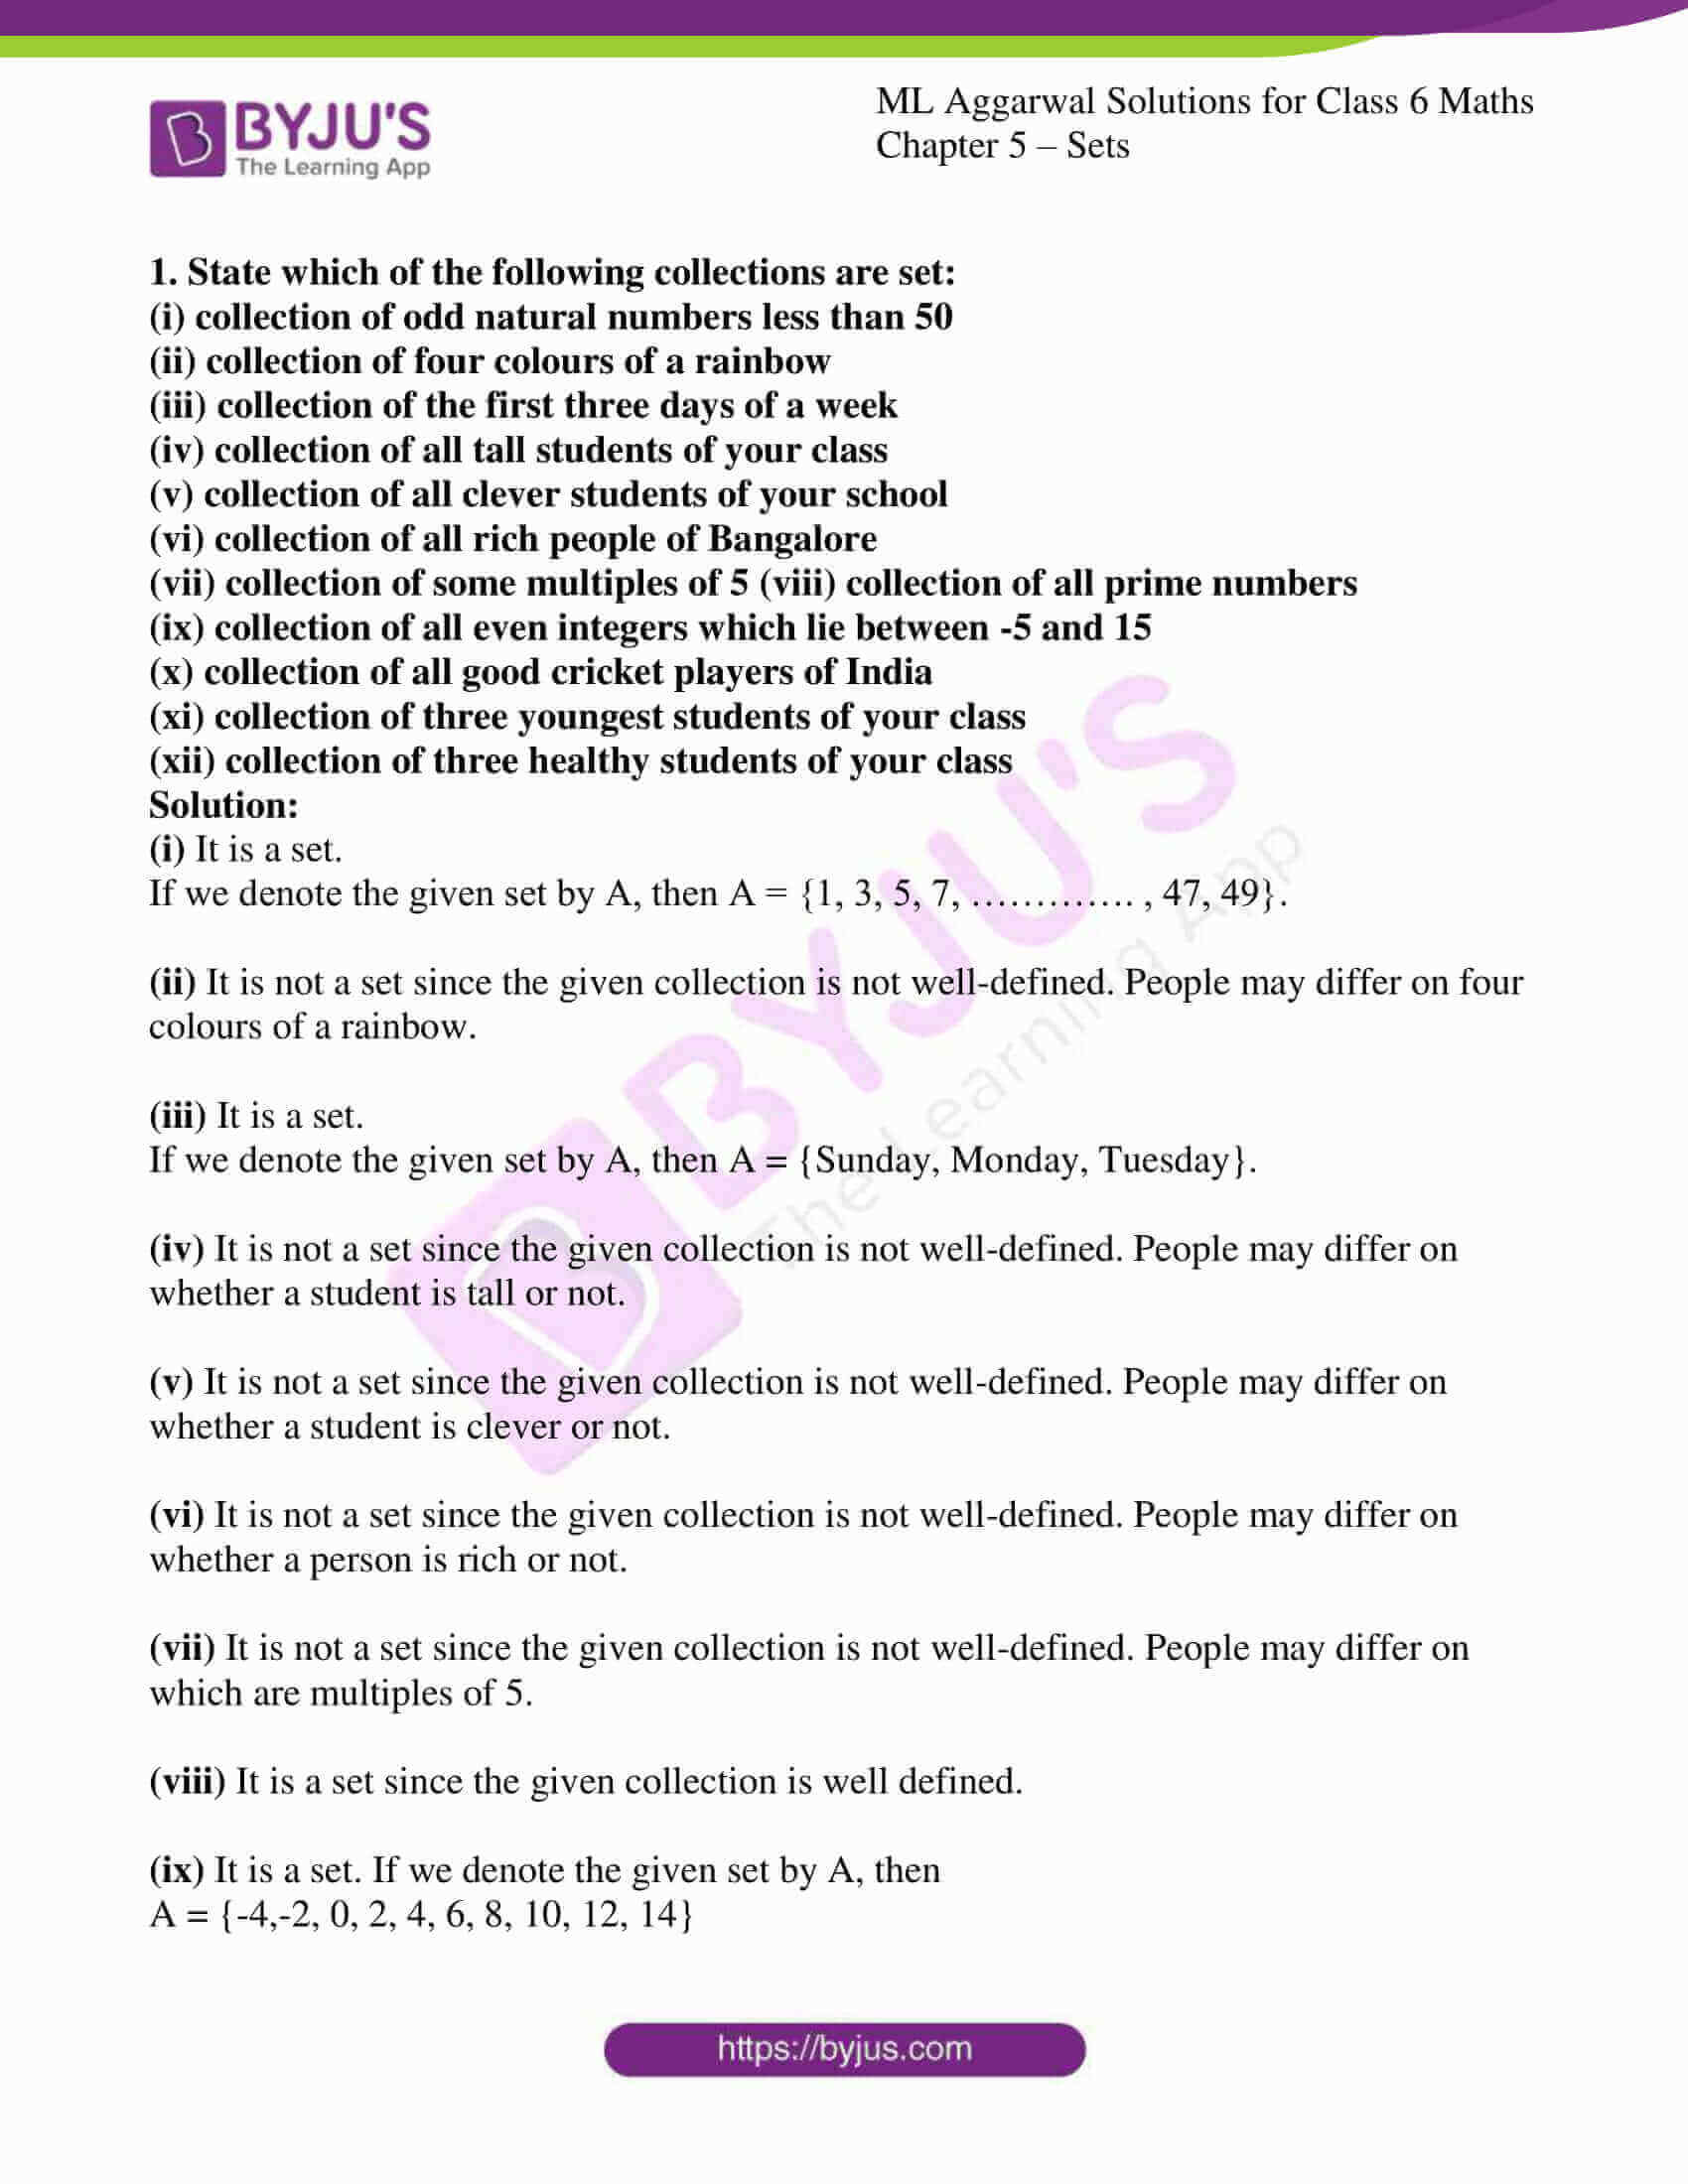 ml aggarwal solutions for class 6 maths chapter 5 1